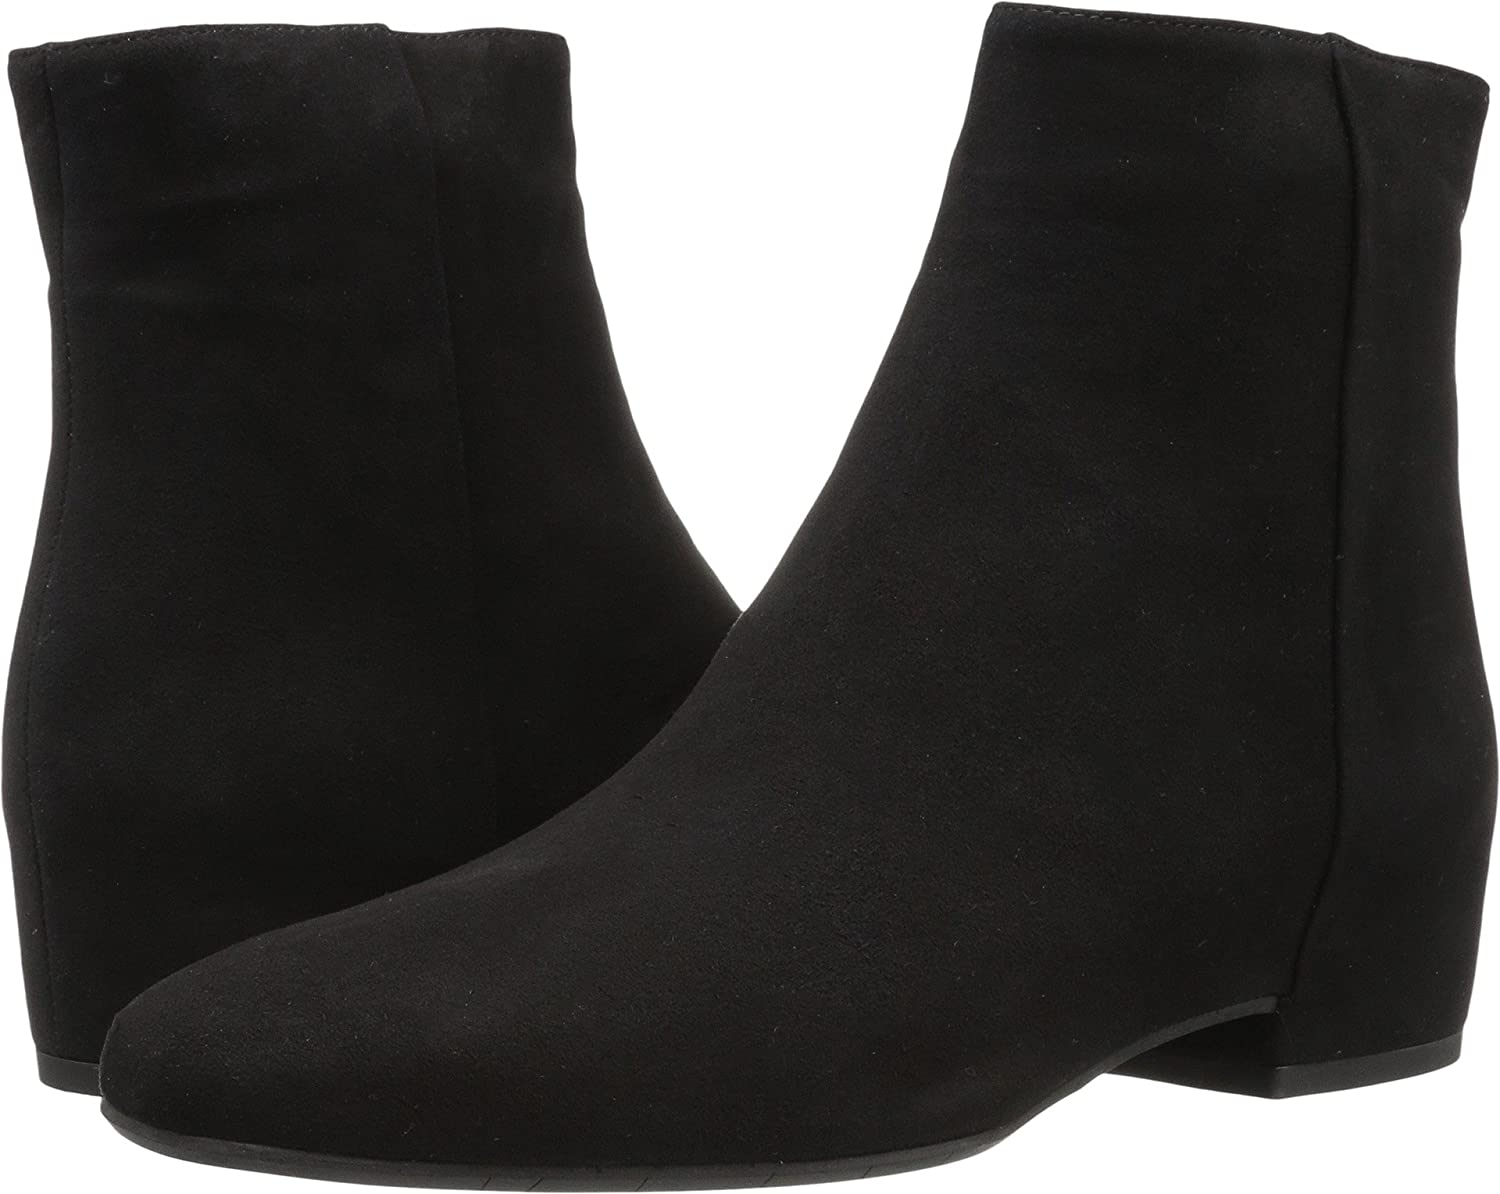 Aquatalia Women's Ulyssaa Suede Ankle Boot B06Y4K91WM 5 B(M) US|Black Suede